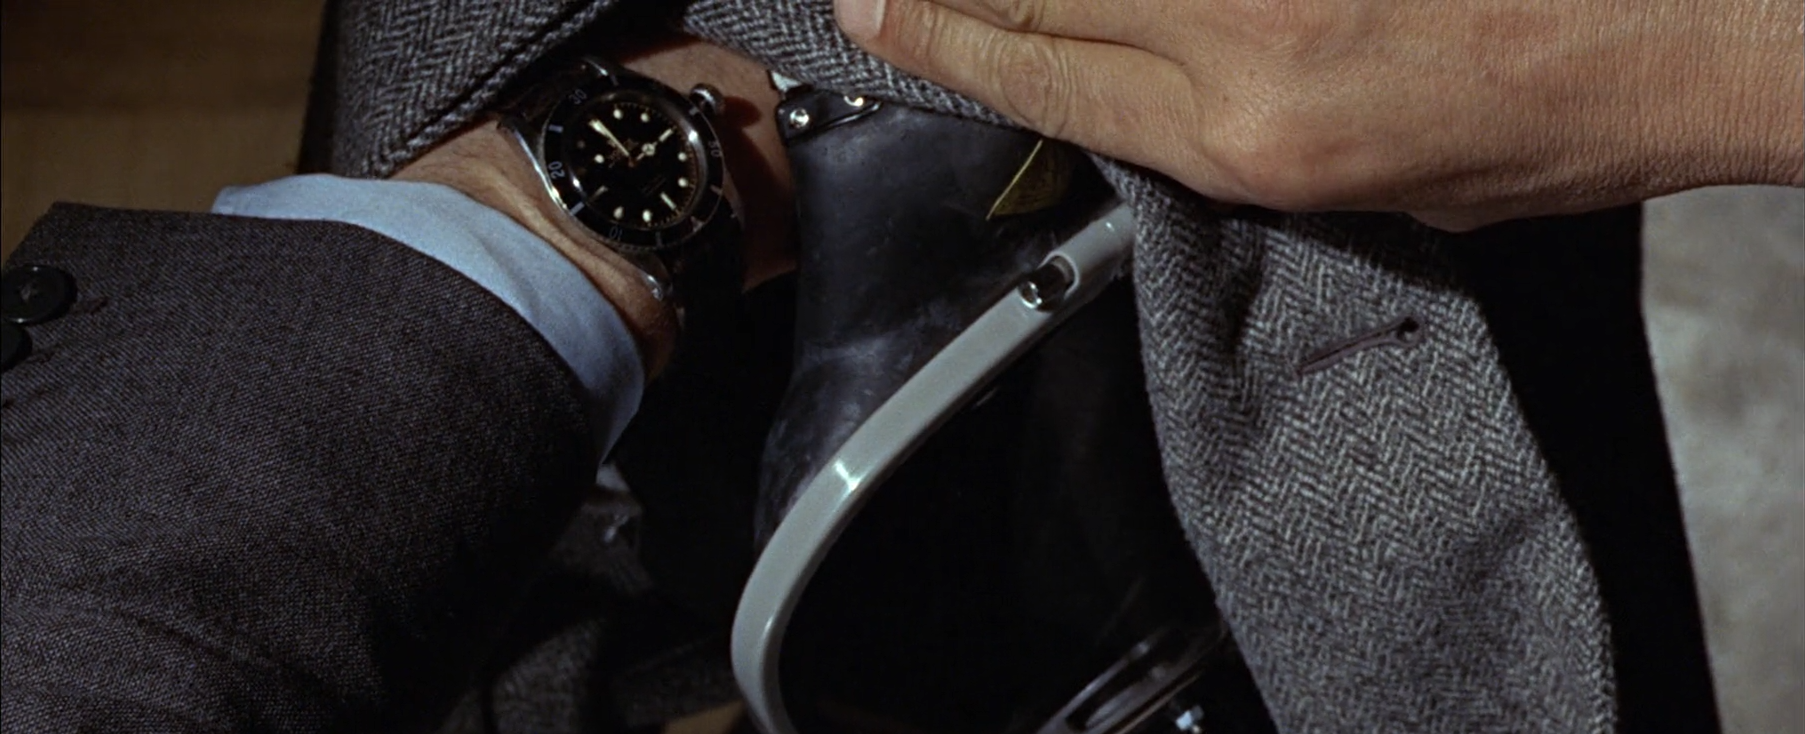 The Rolex Submariner Ref. 6538 and the colored nylon strap seen in  From Russia With Love .